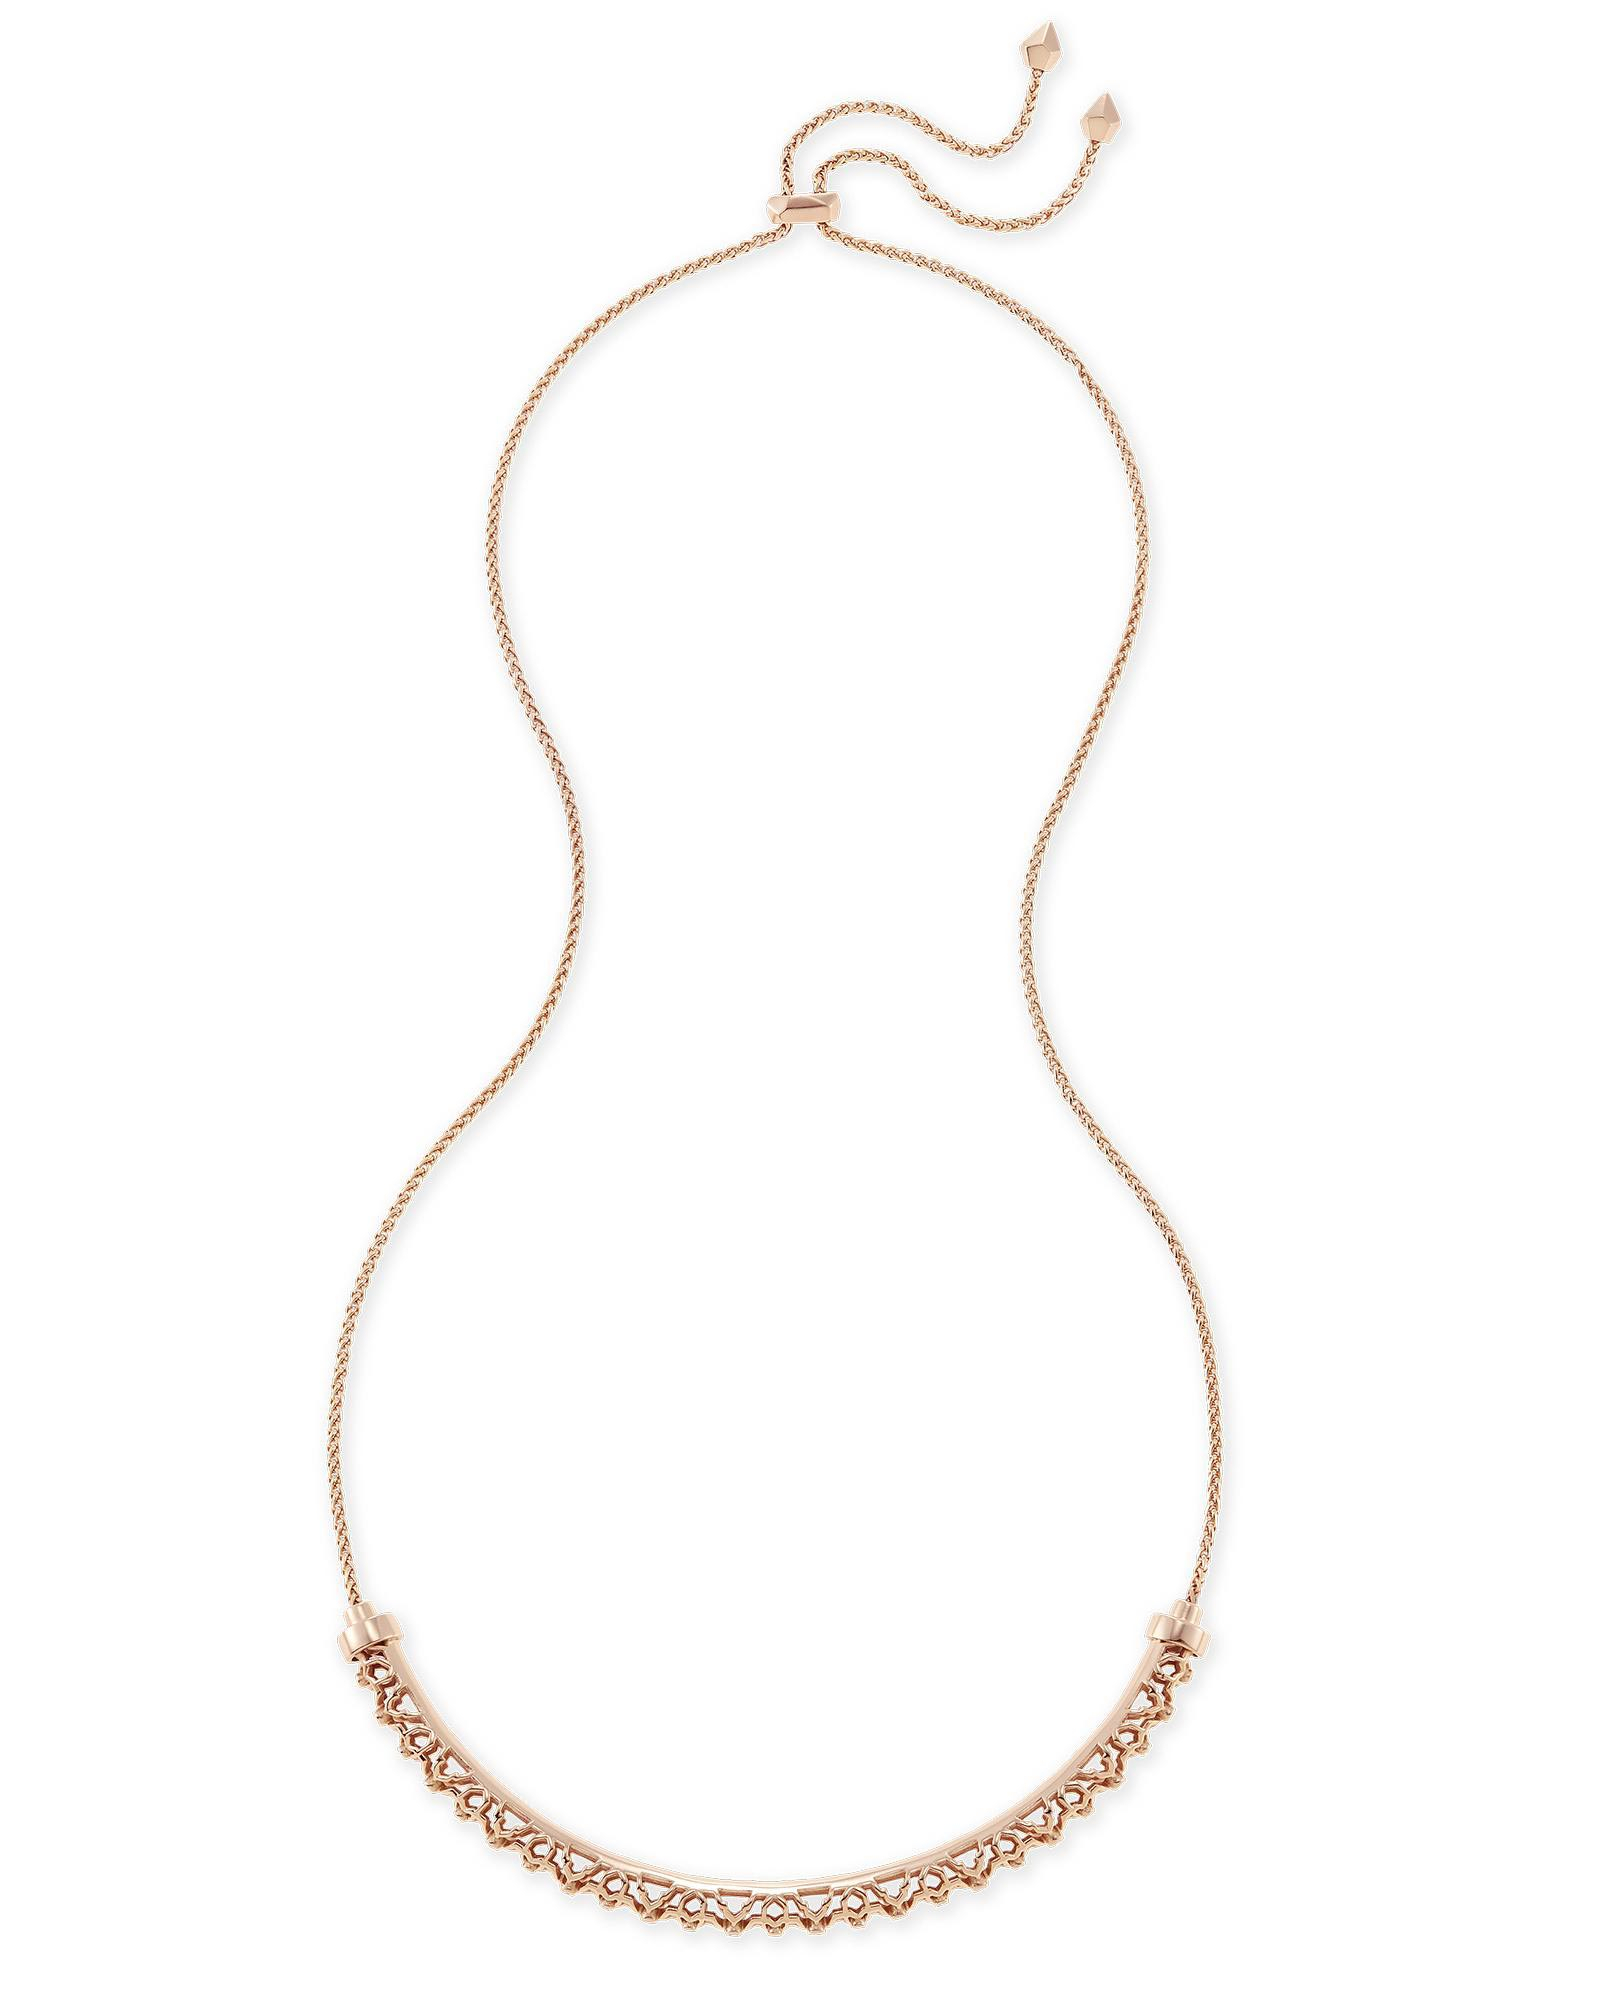 Lucy Choker Necklace In Rose Gold Pertaining To Most Current Gate Of Love Necklaces (View 17 of 25)